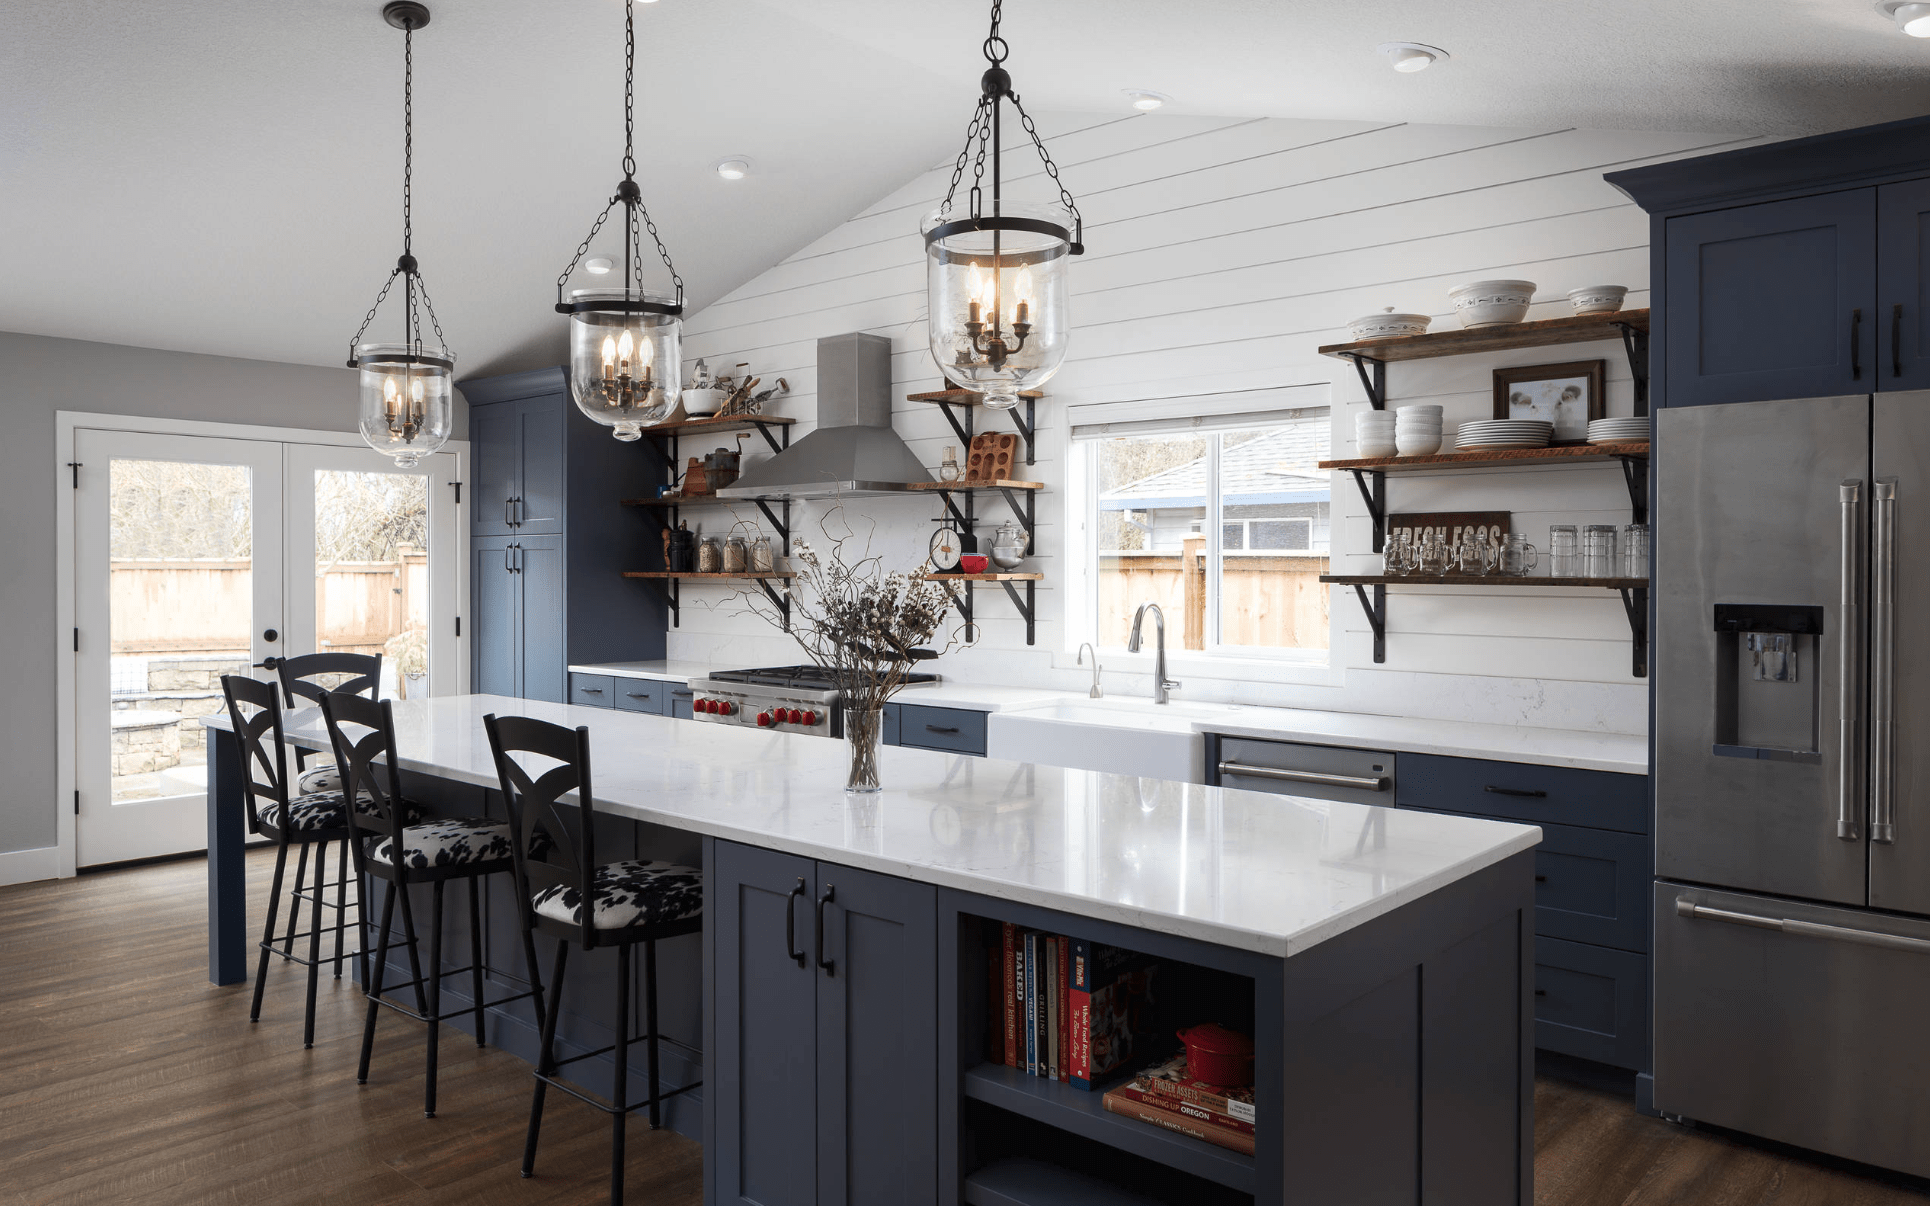 Kitchen Design Room Here Are 15 Modern Farmhouse Kitchen Ideas To Inspire You